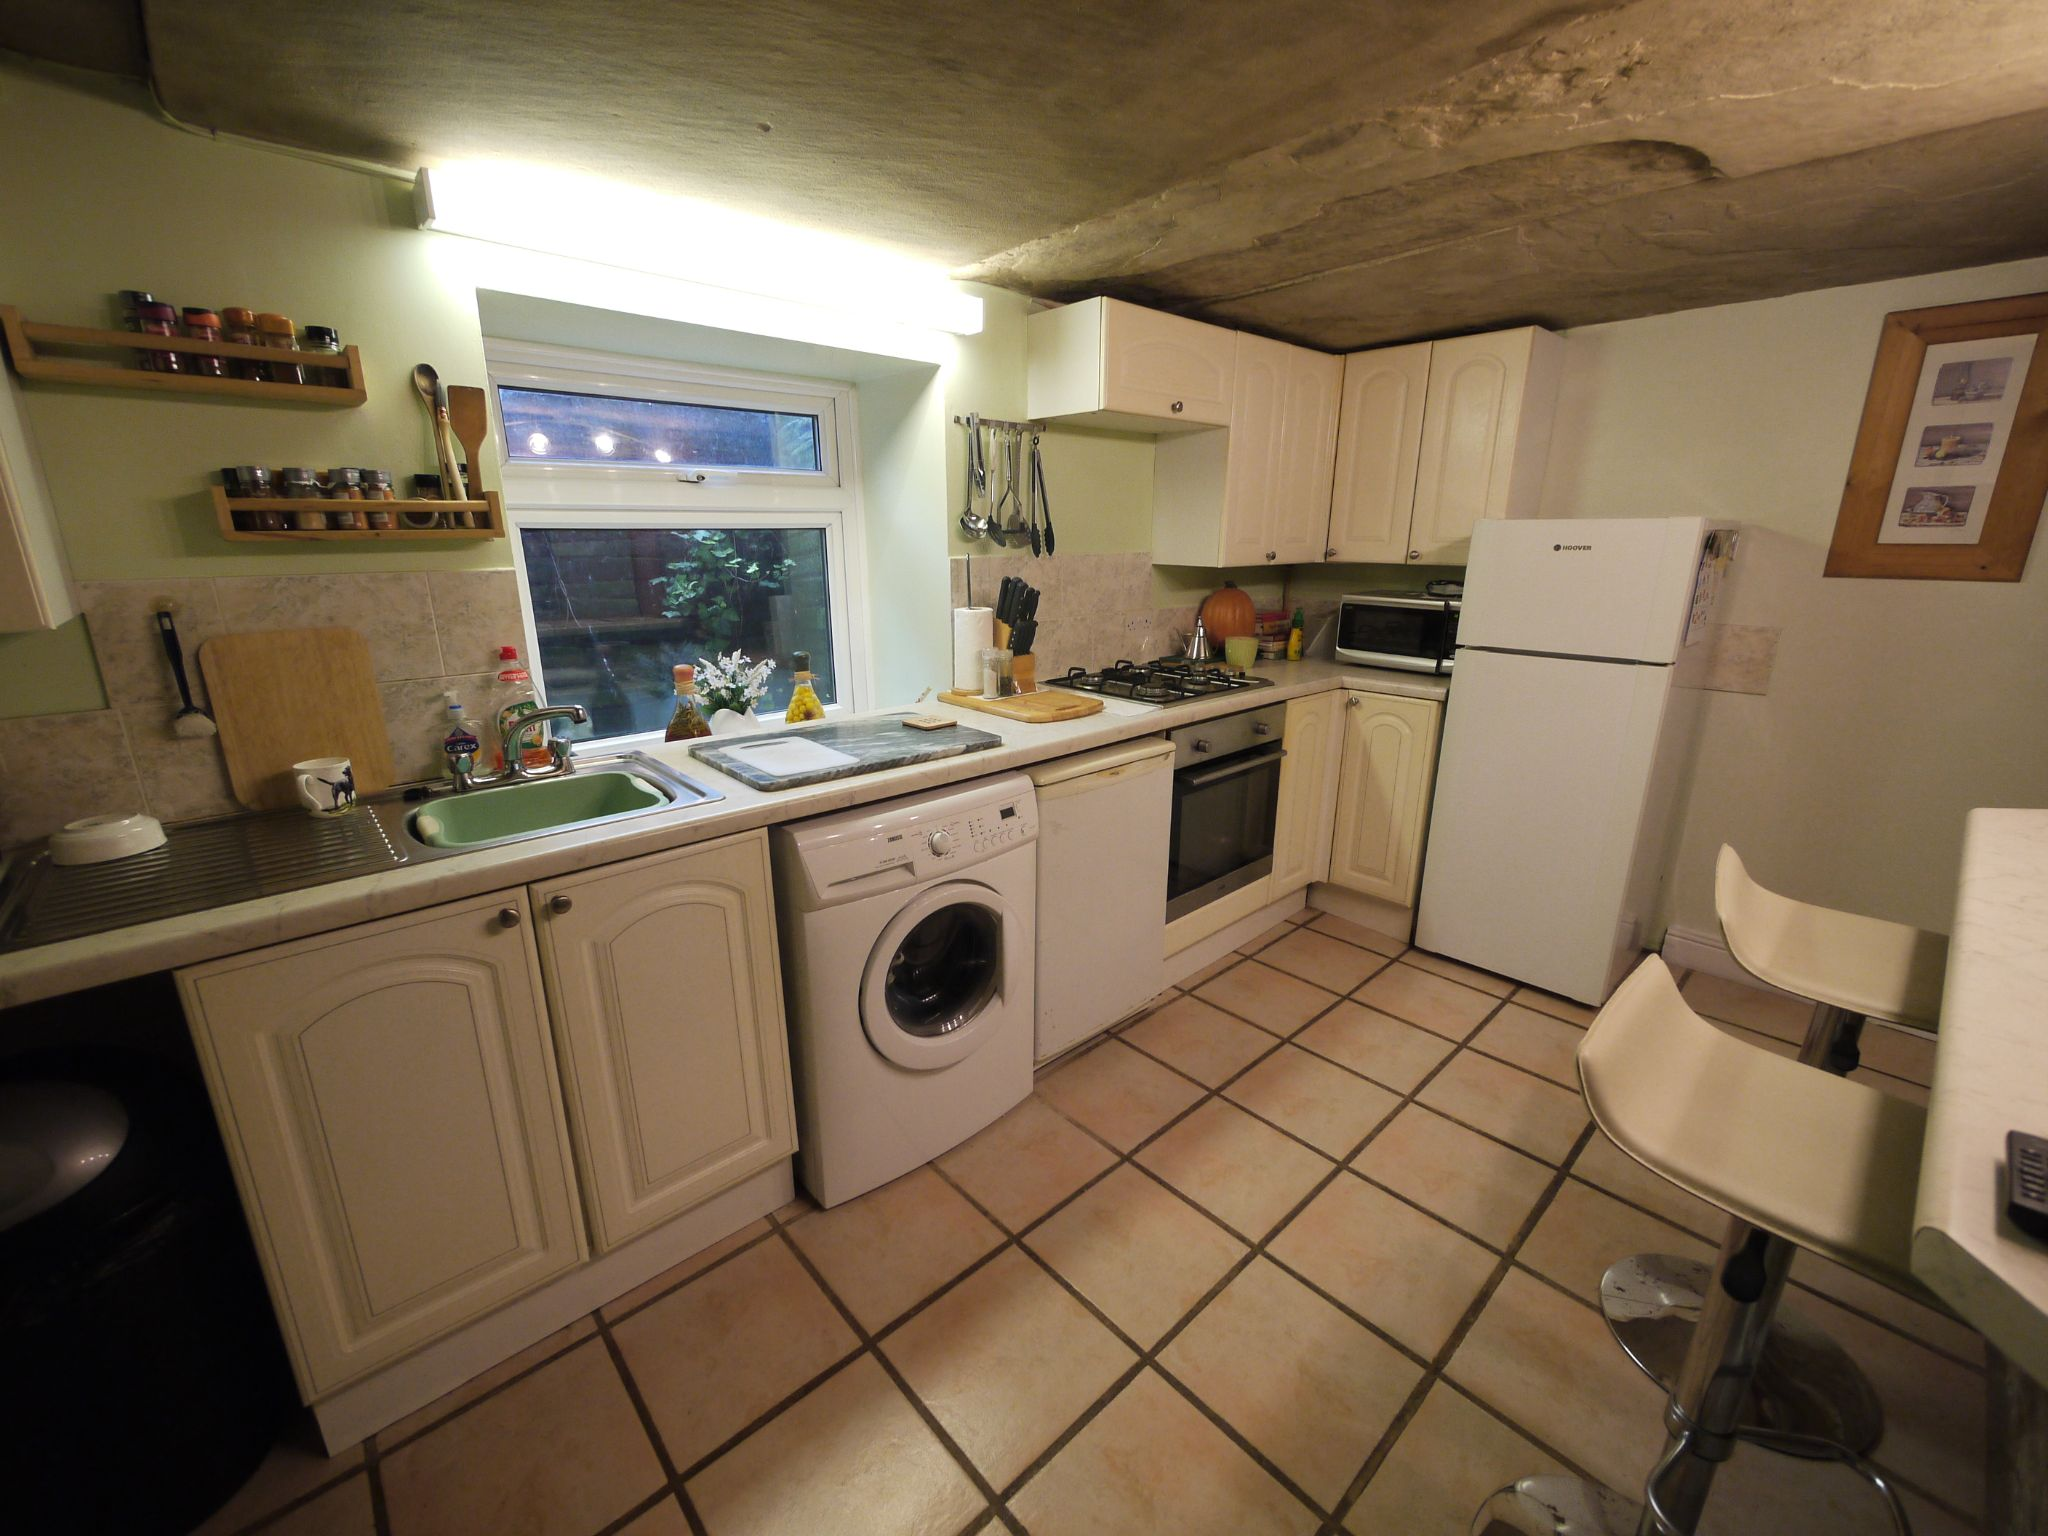 1 bedroom mid terraced house For Sale in Elland - Kitchen 2.